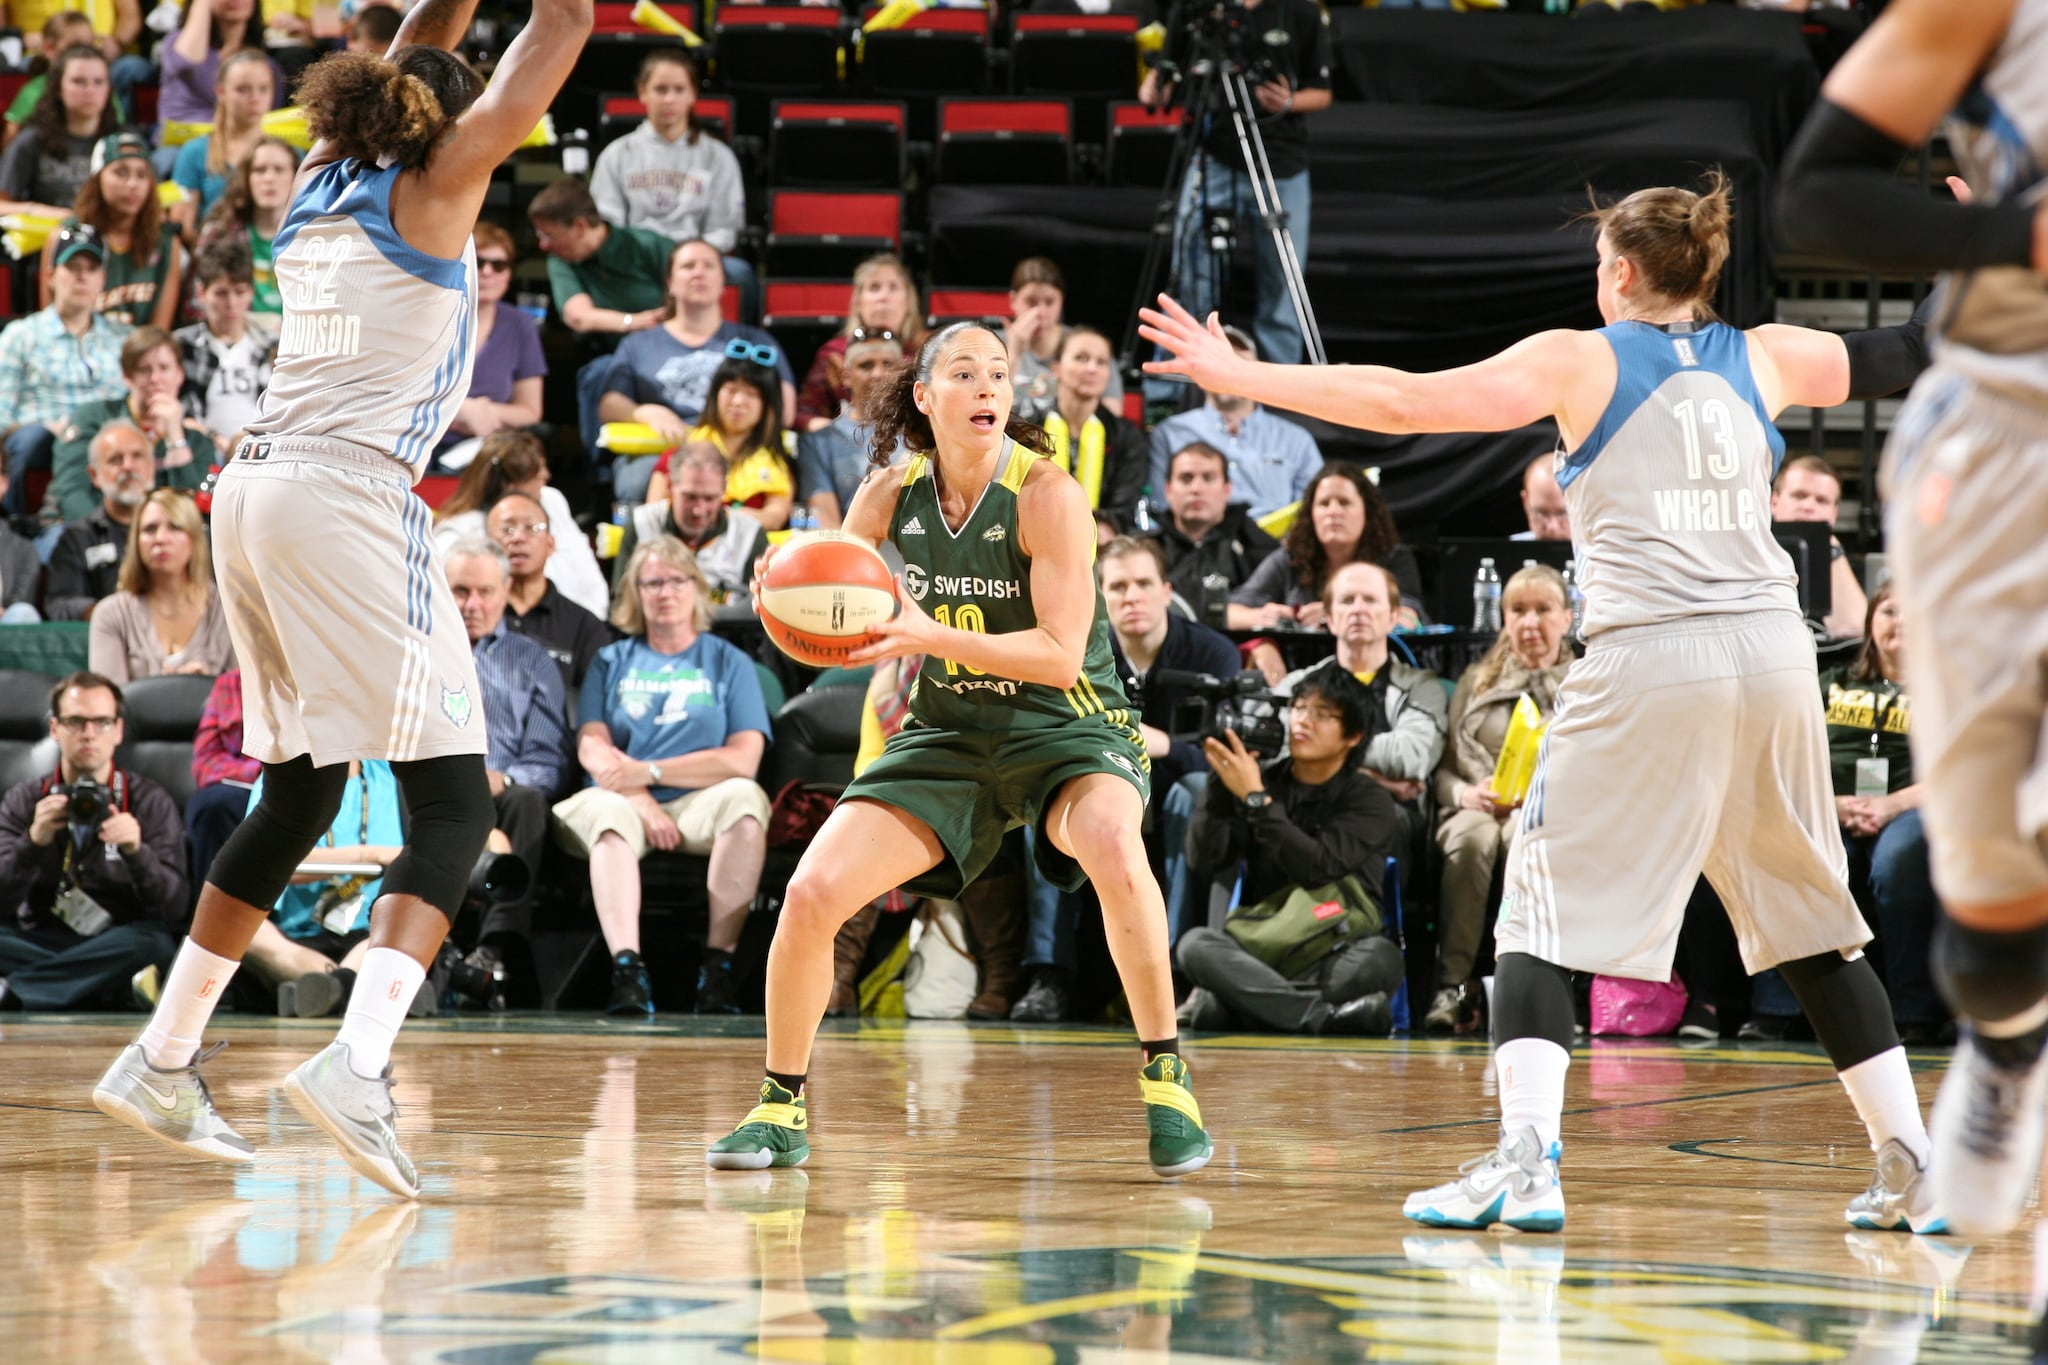 SEATTLE, WA - MAY 22:  Sue Bird #10 of the Seattle Storm handles the ball against the Minnesota Lynx on May 22, 2016 at KeyArena in Seattle, Washington. NOTE TO USER: User expressly acknowledges and agrees that, by downloading and or using this photograph, user is consenting to the terms and conditions of Getty Images License Agreement. Mandatory Copyright Notice: Copyright 2016 NBAE (Photo by Josh Huston/NBAE via Getty Images)